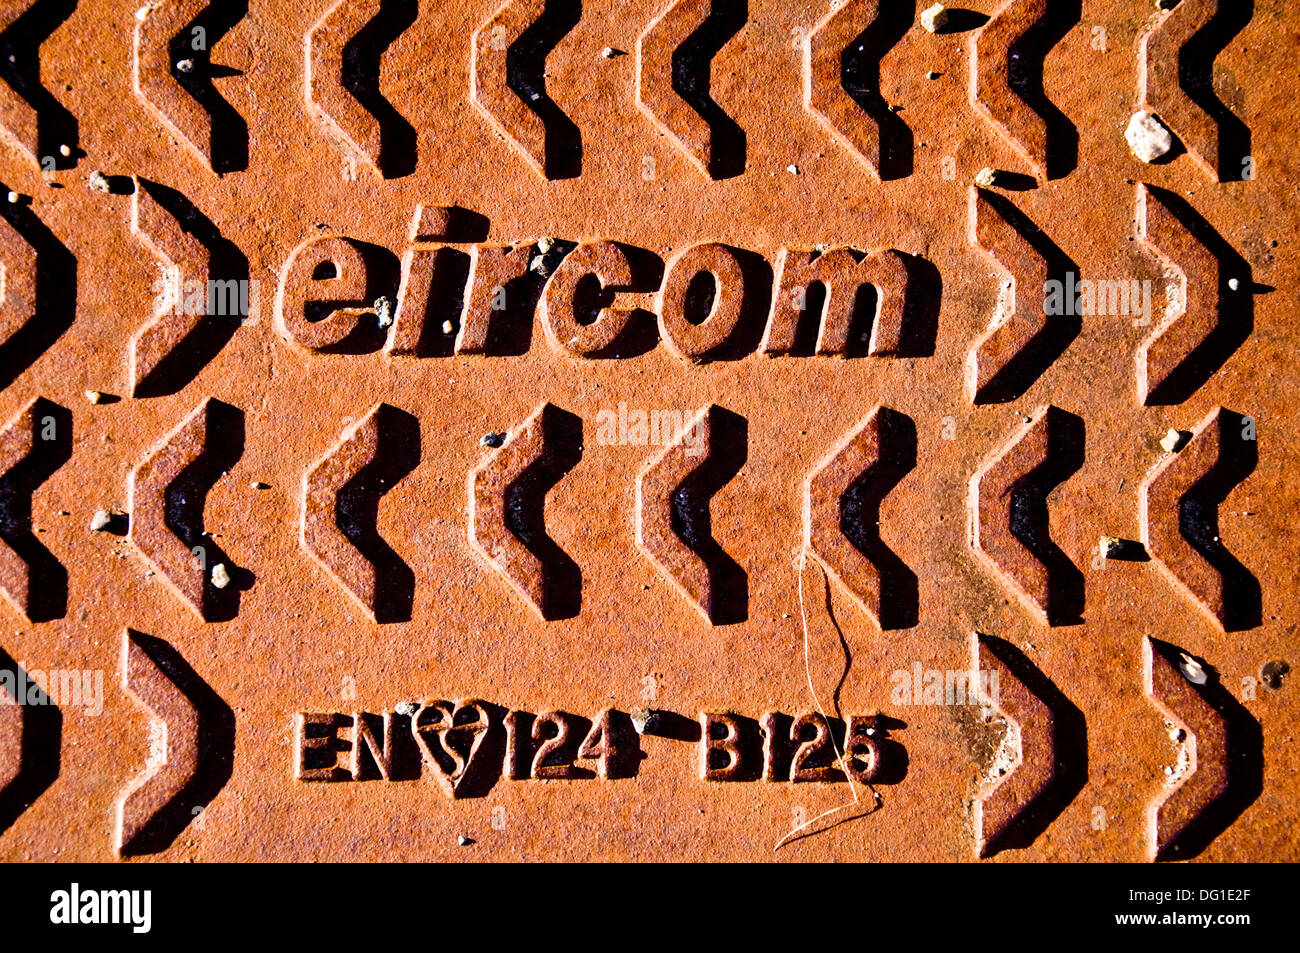 Eircom logo on rusting steel iron access cover - Stock Image